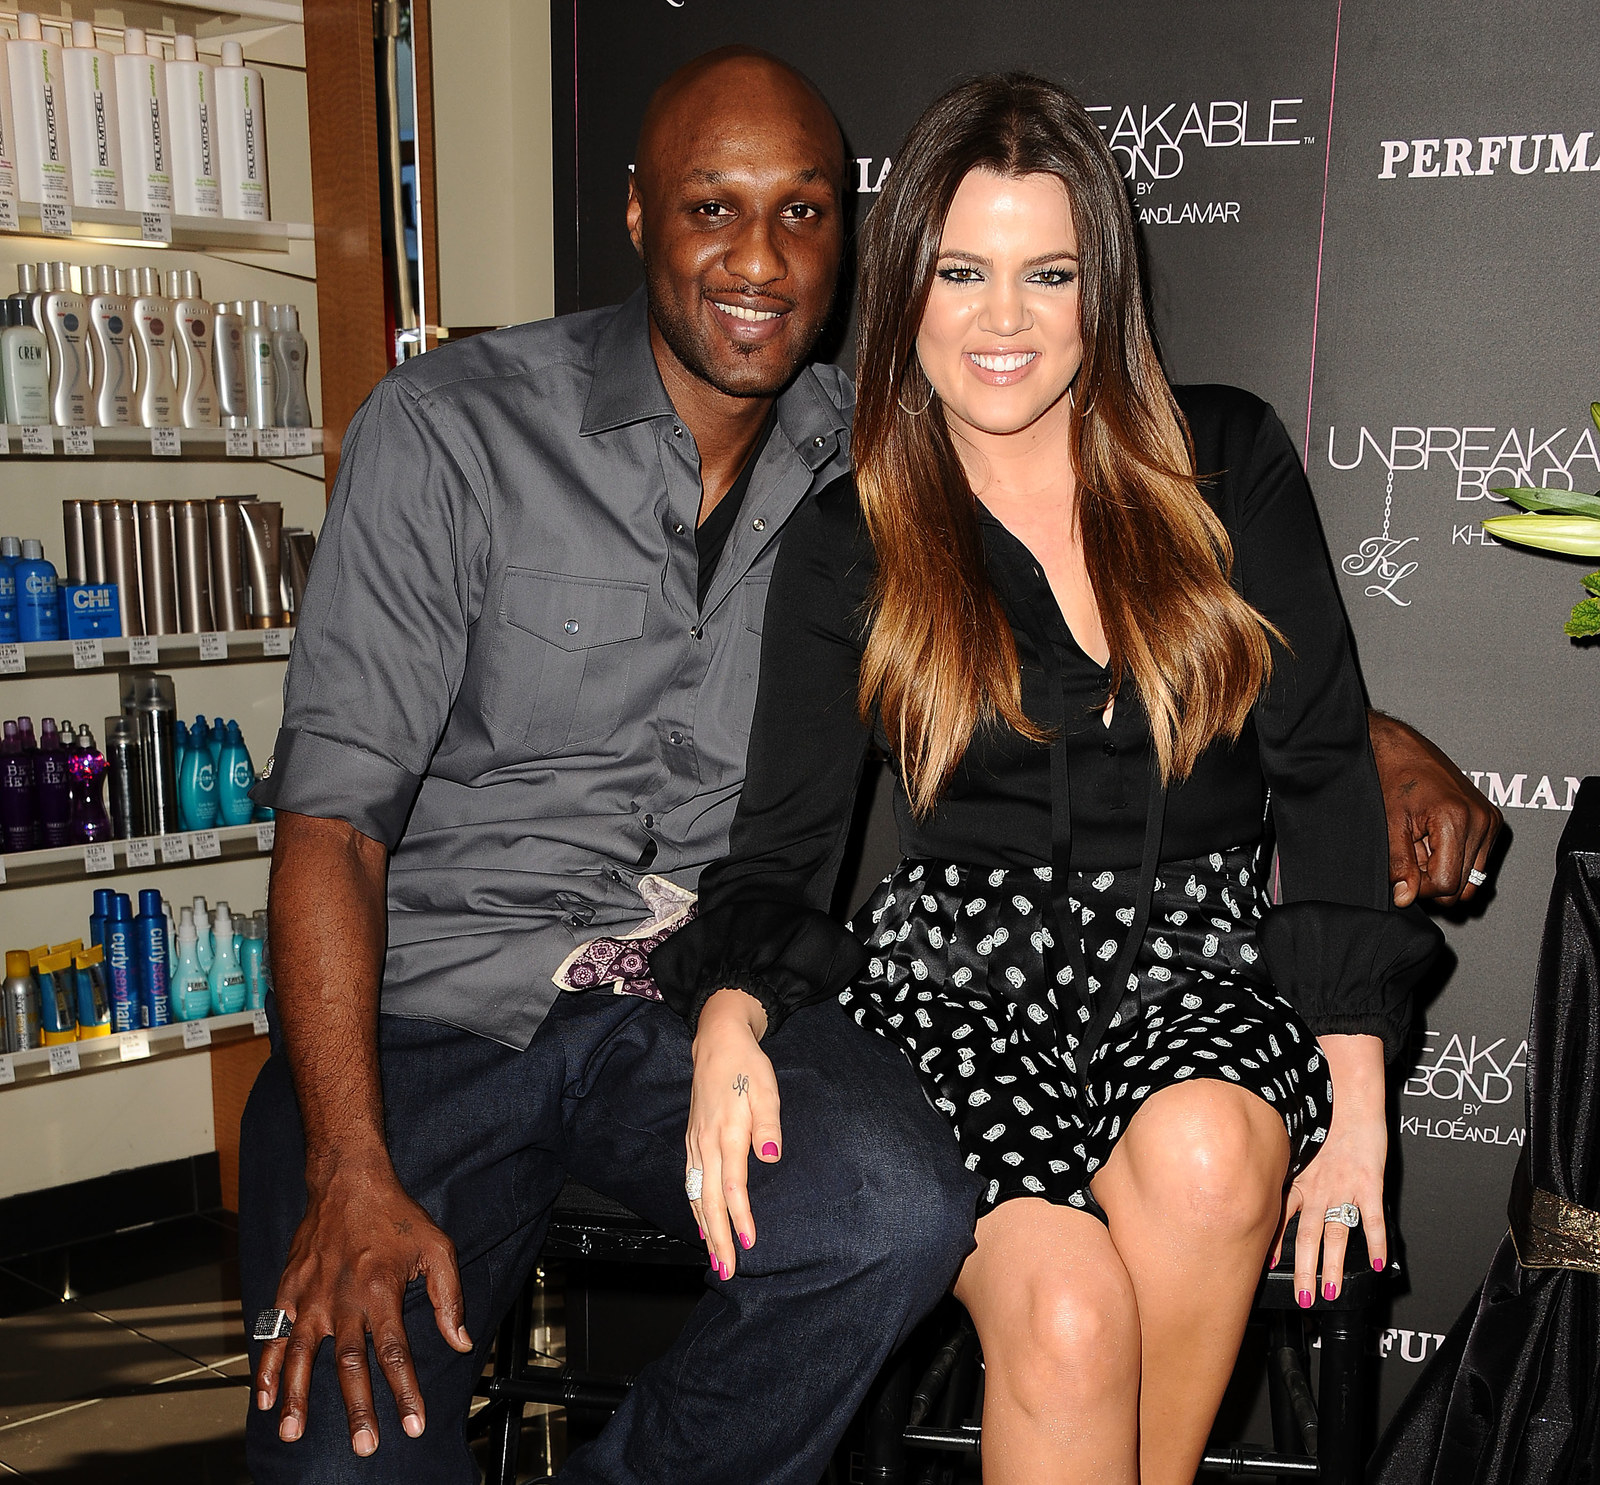 Not only did Lamar cheat on Khloé multiple times, but she was also attempting to help him deal with a serious drug addiction.